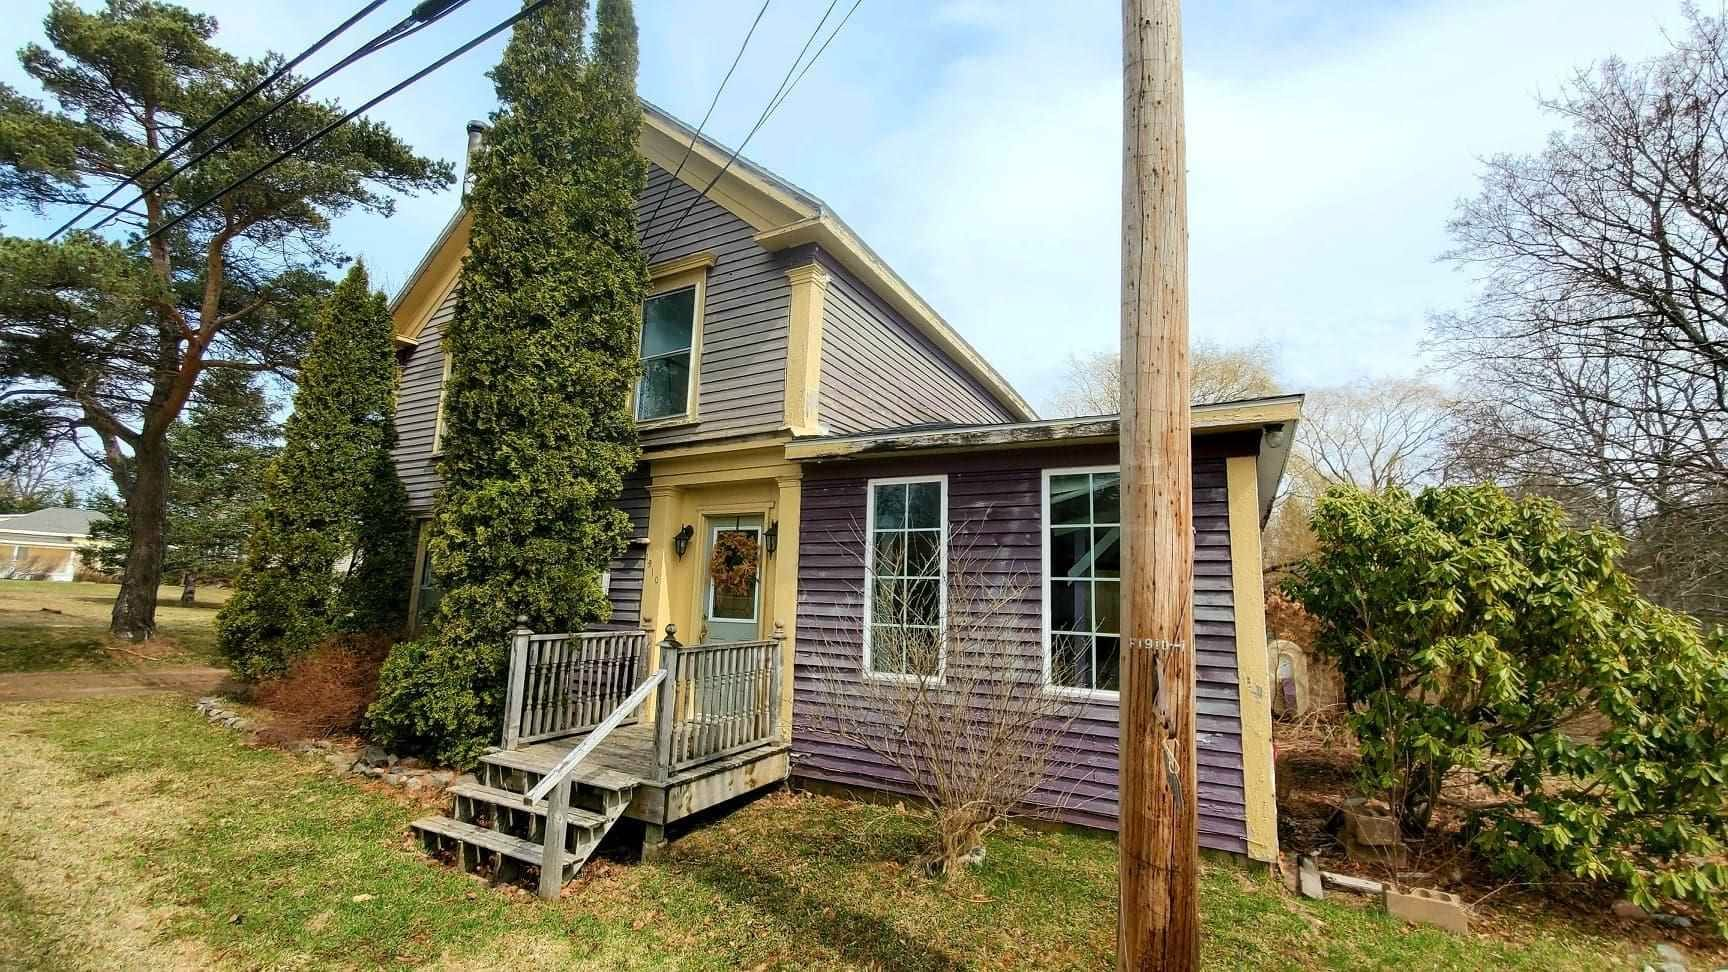 Main Photo: 1910 359 Highway in Centreville: 404-Kings County Residential for sale (Annapolis Valley)  : MLS®# 202110274